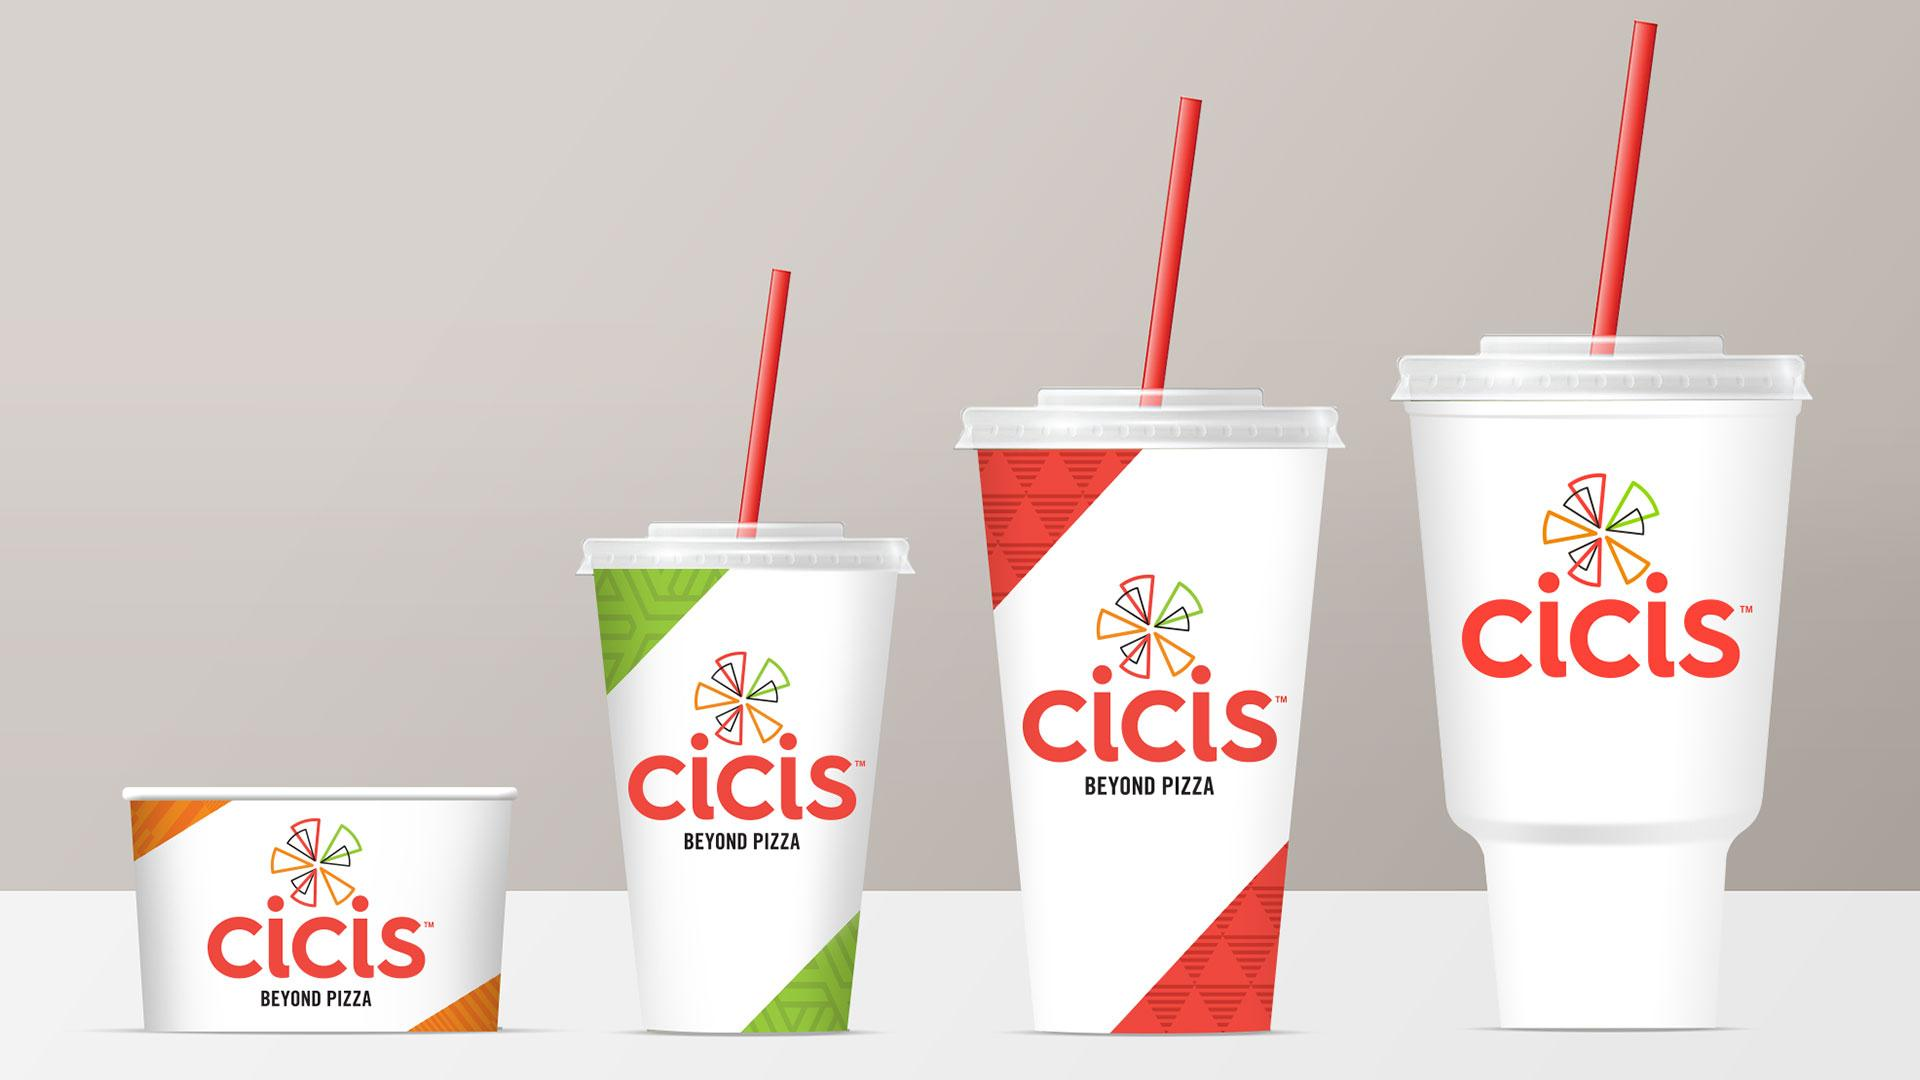 cicis-brand-identity-packaging-cups